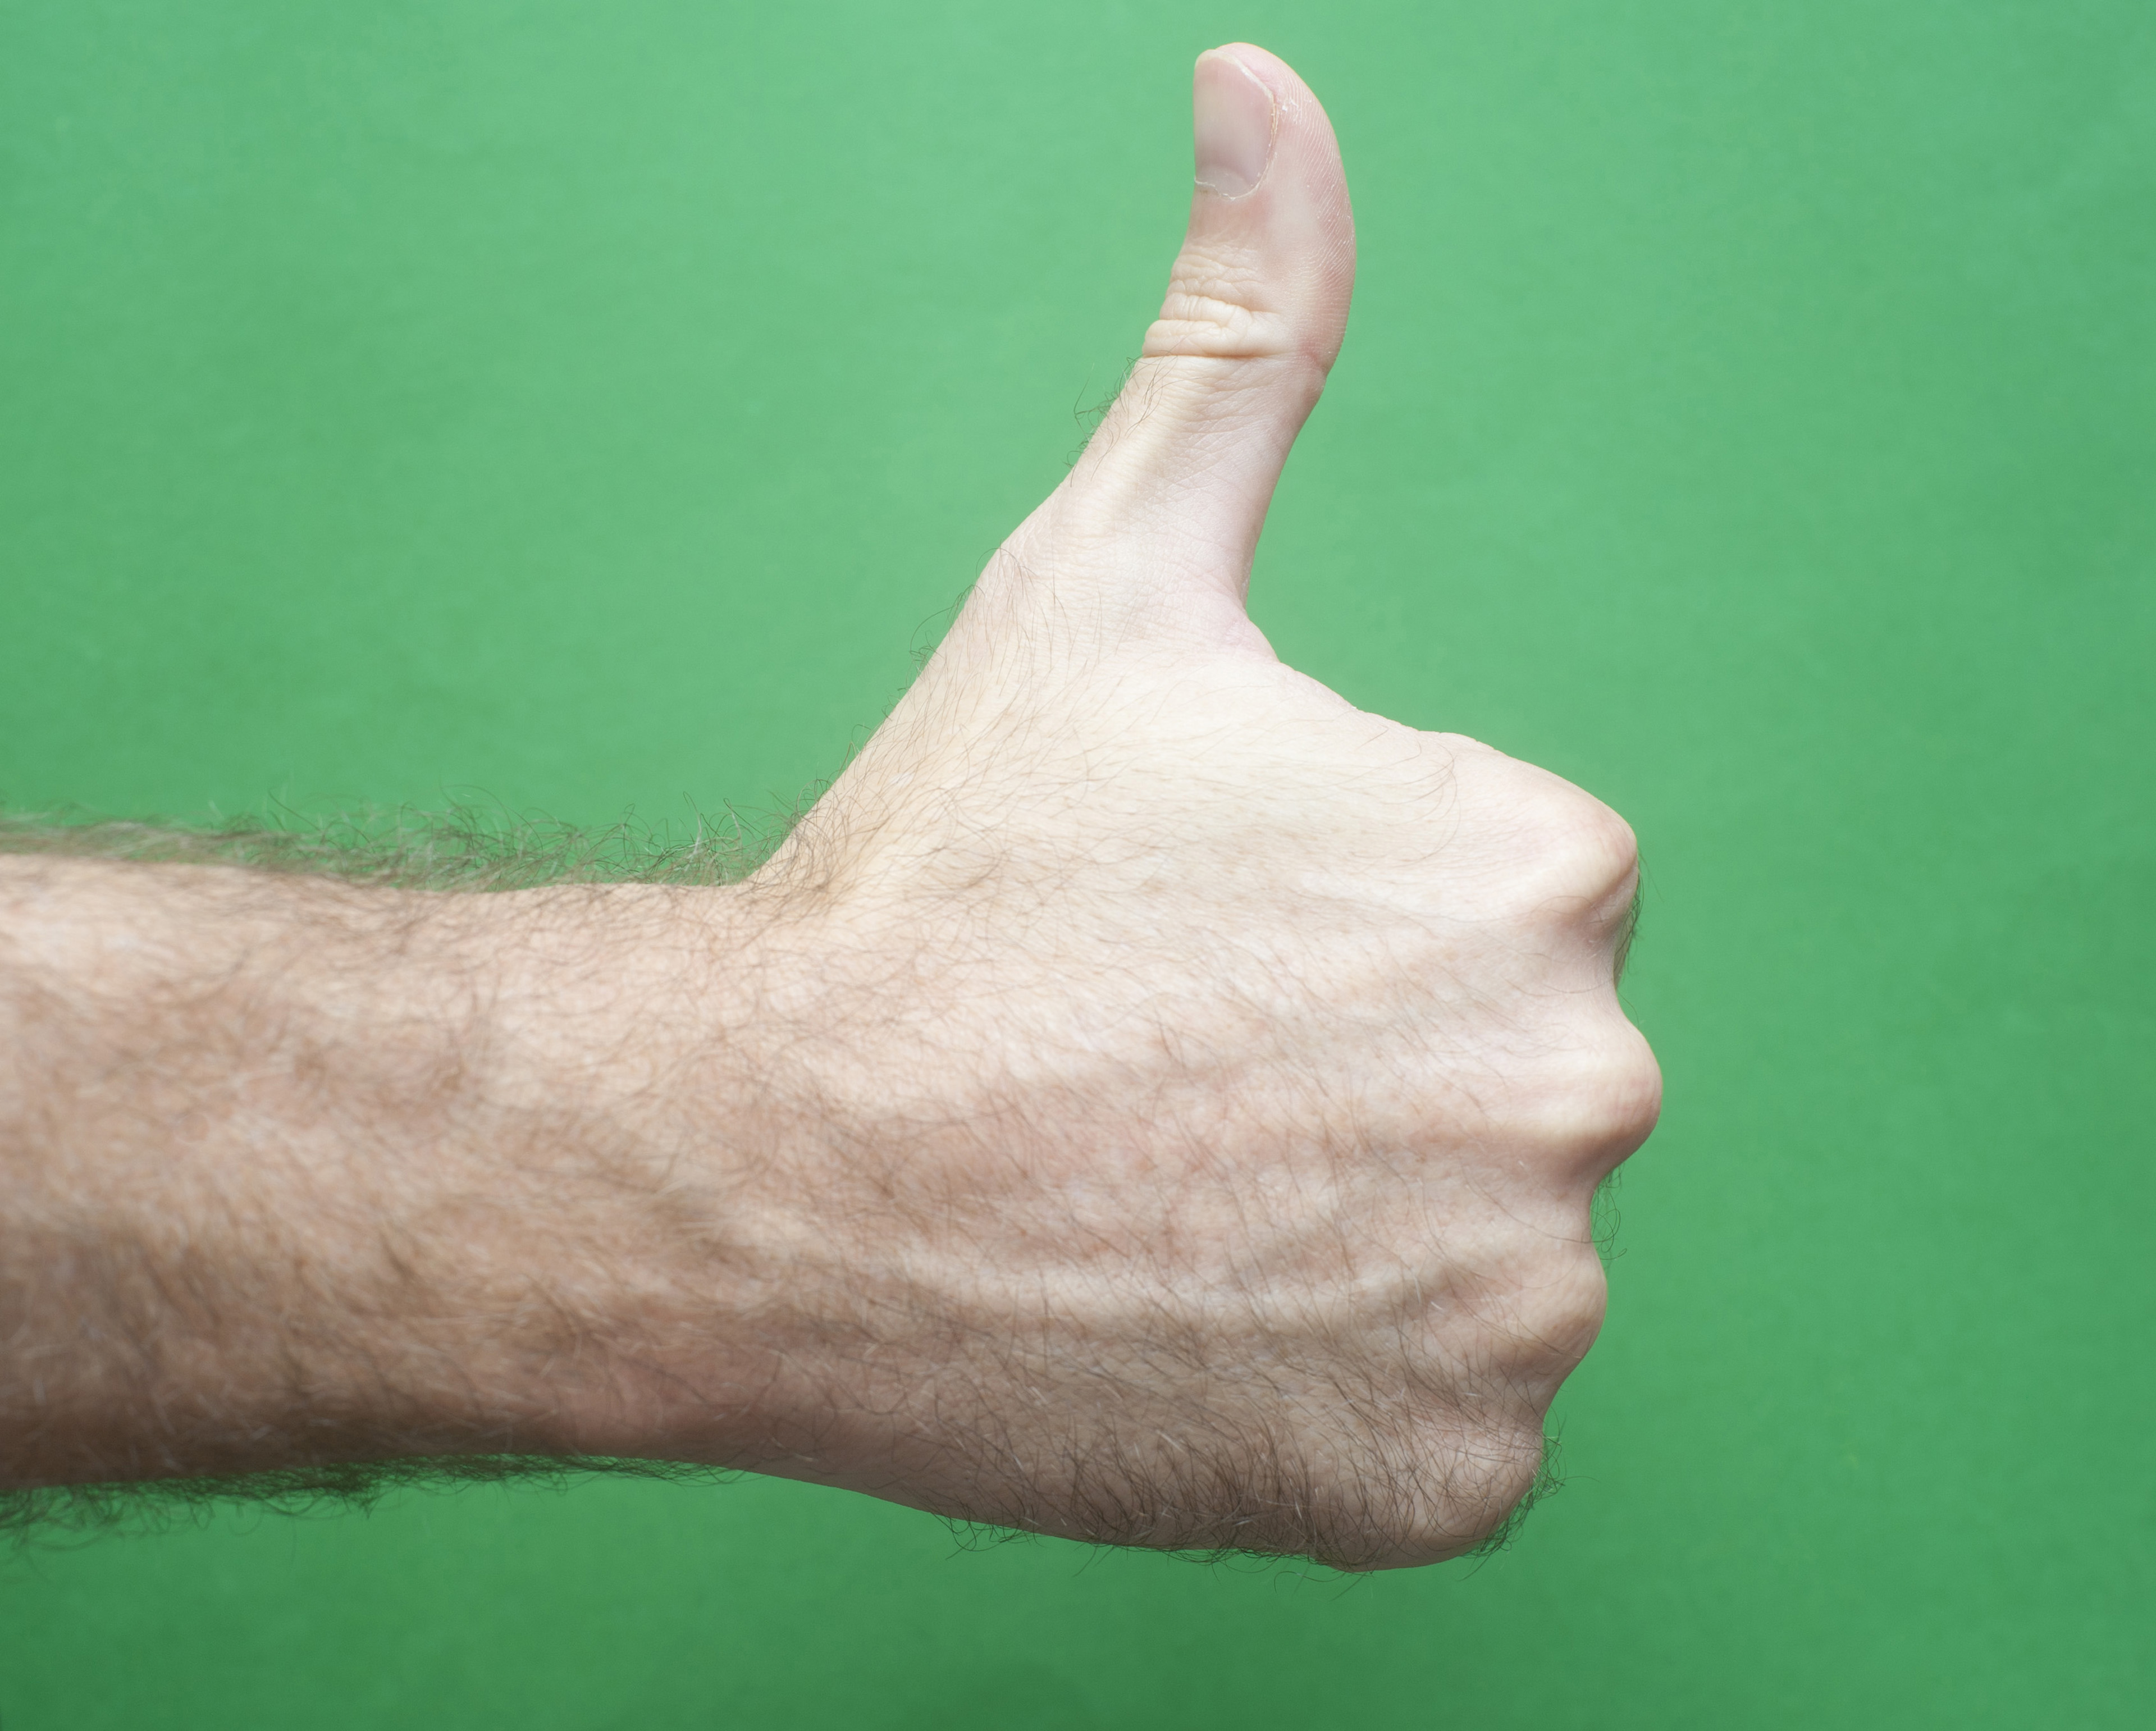 Close up Bare Hairy Man Hand Showing Thumbs Up Sign, Isolated on Green Background.